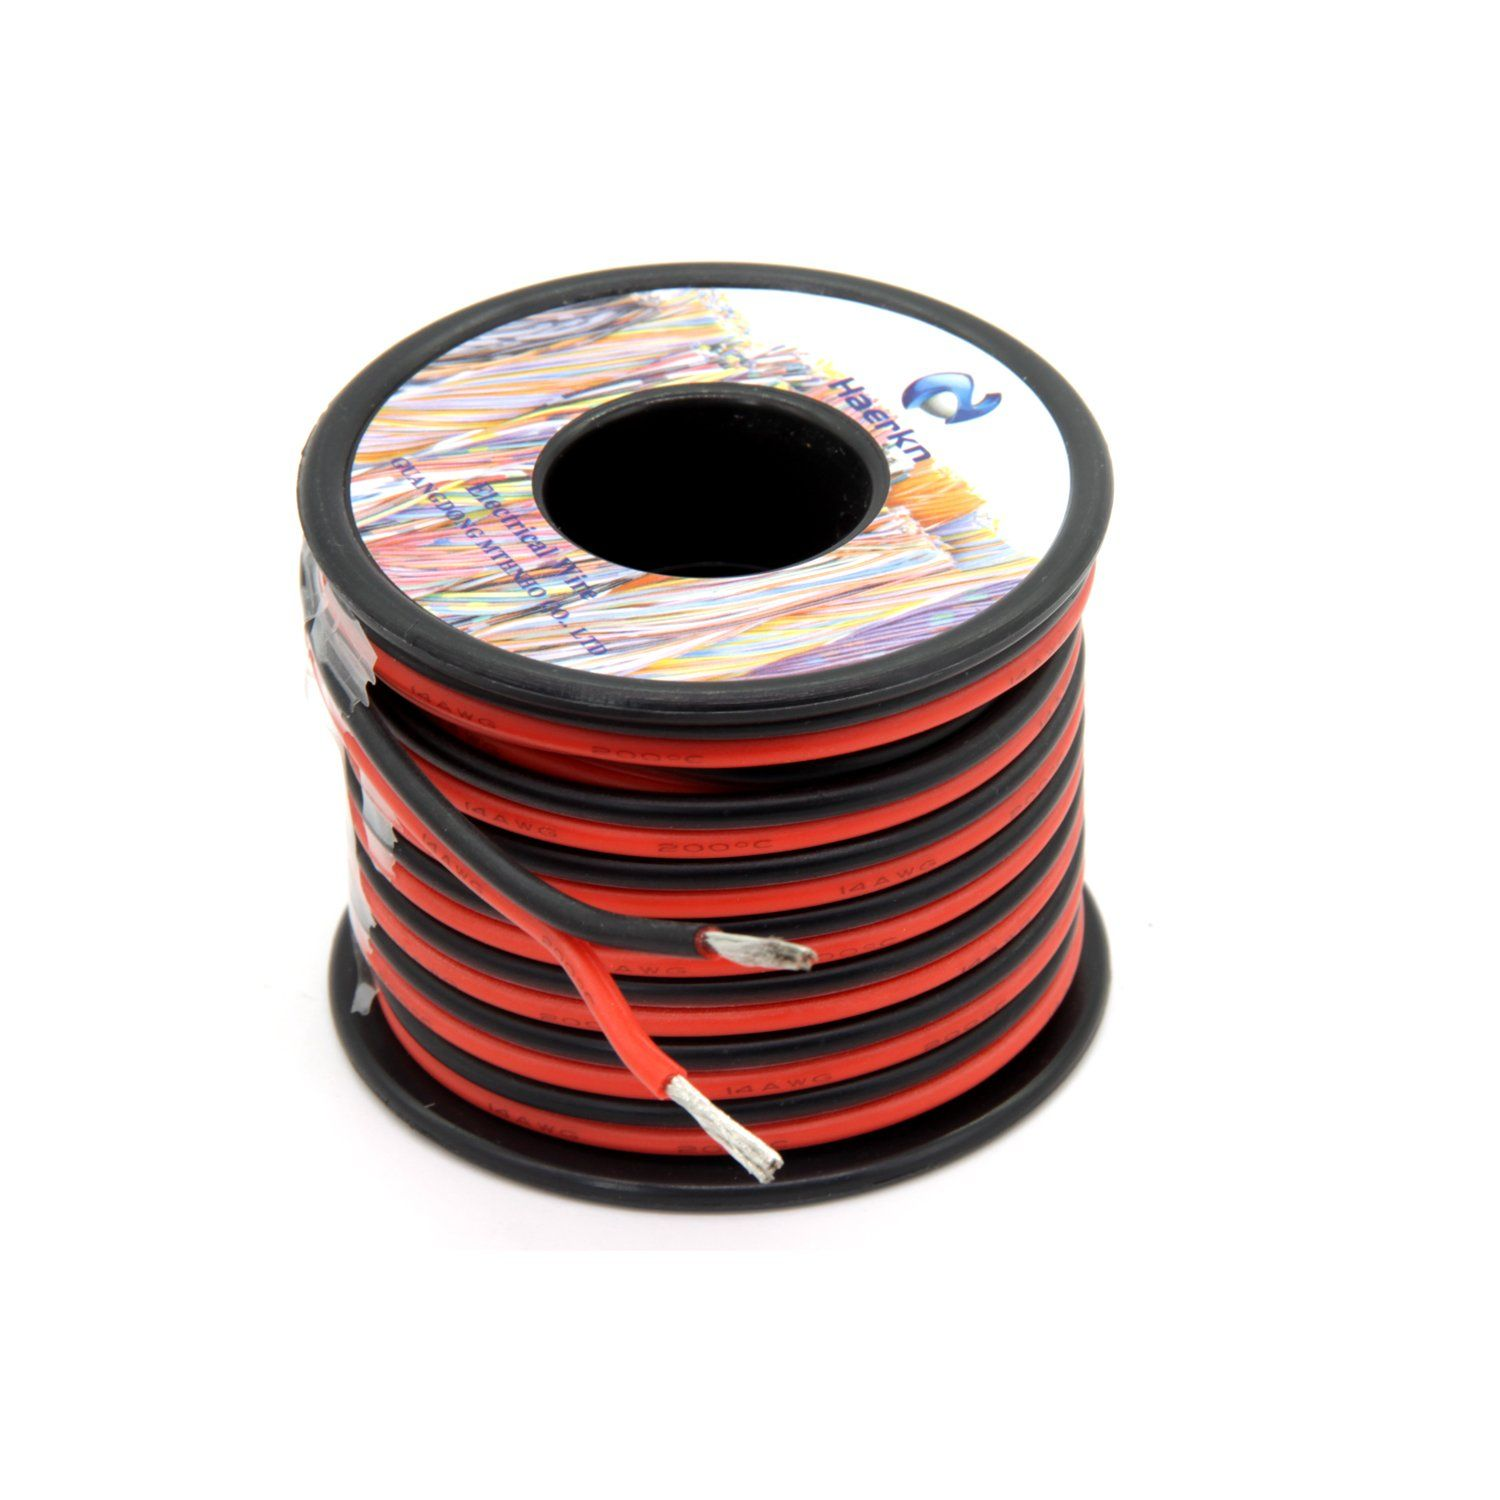 14 Awg Silicone Electrical Wire 2 Conductor Parallel Wire Line 50ft 14 Gauge Soft And Flexible Hook Up Oxygen Free S Electrical Wiring Electricity Copper Wire